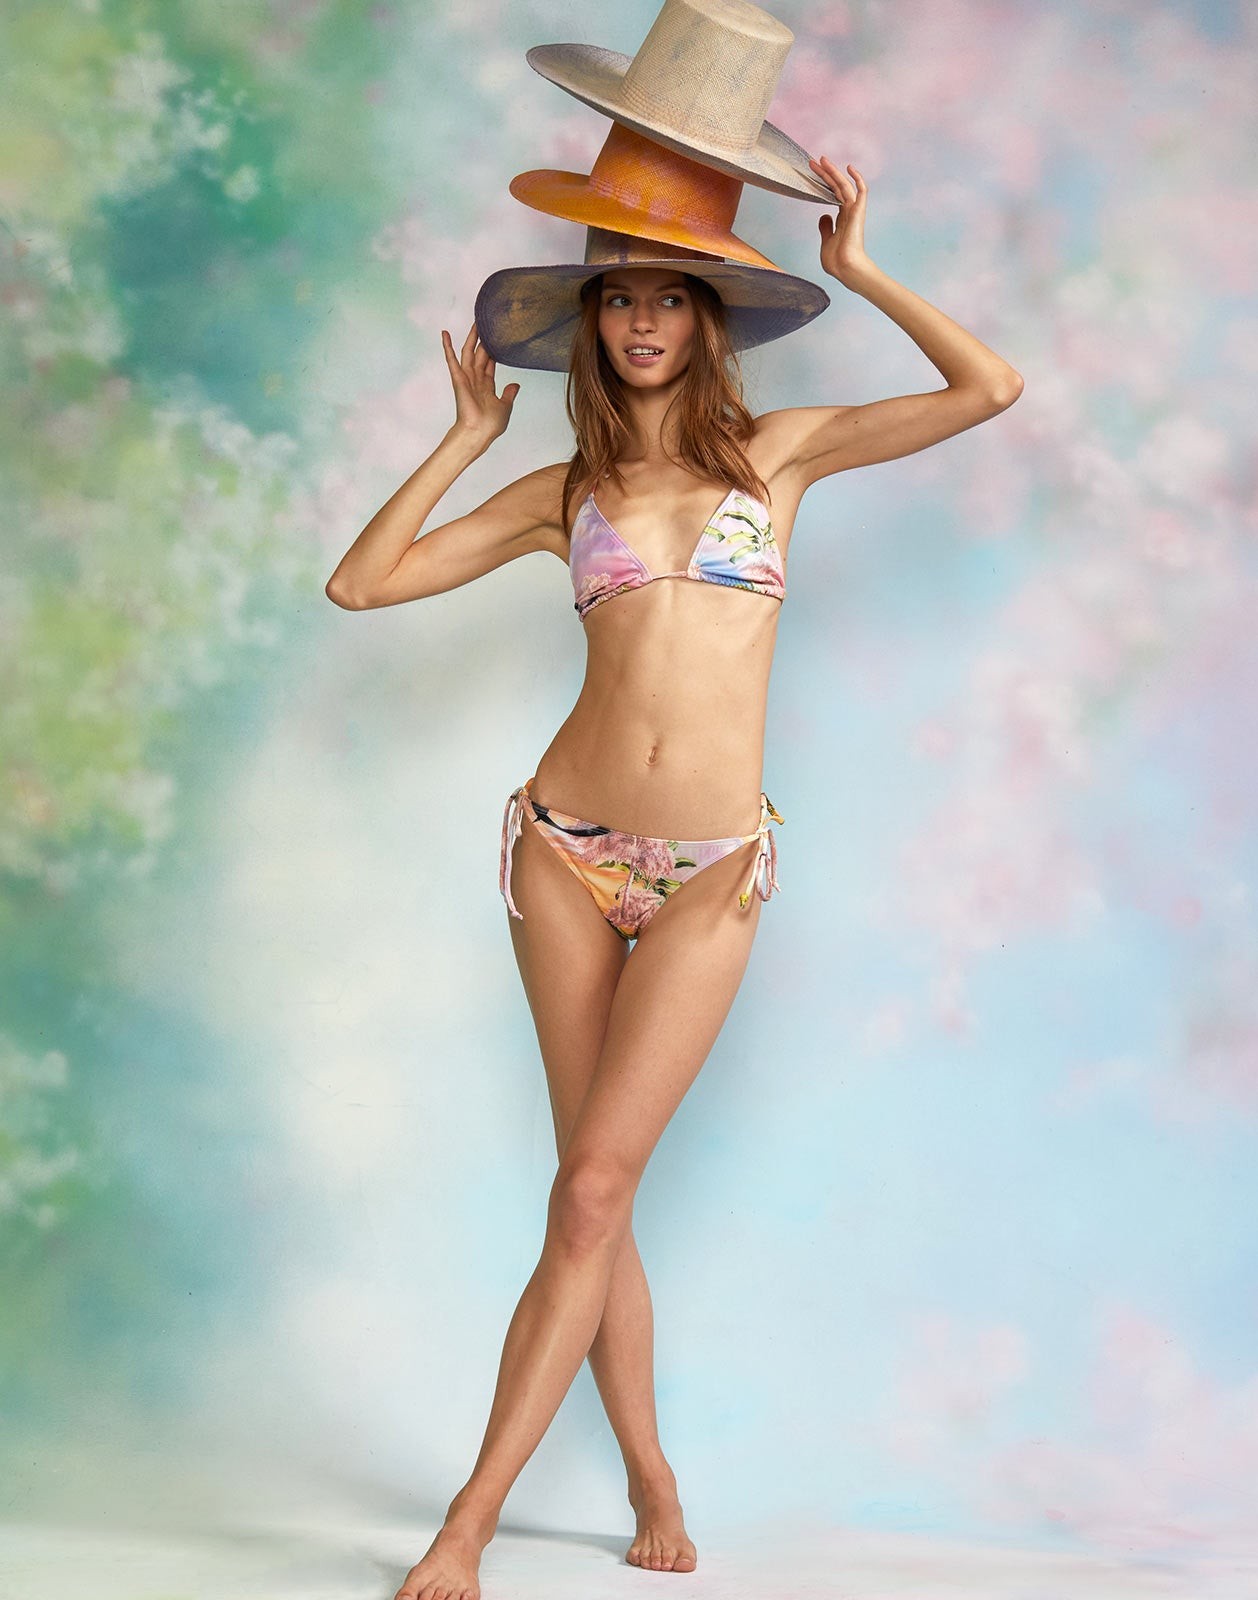 Alternate full view of model wearing the Pink Seascape Bikini Top with the Pink Seascape Bikini Bottom.